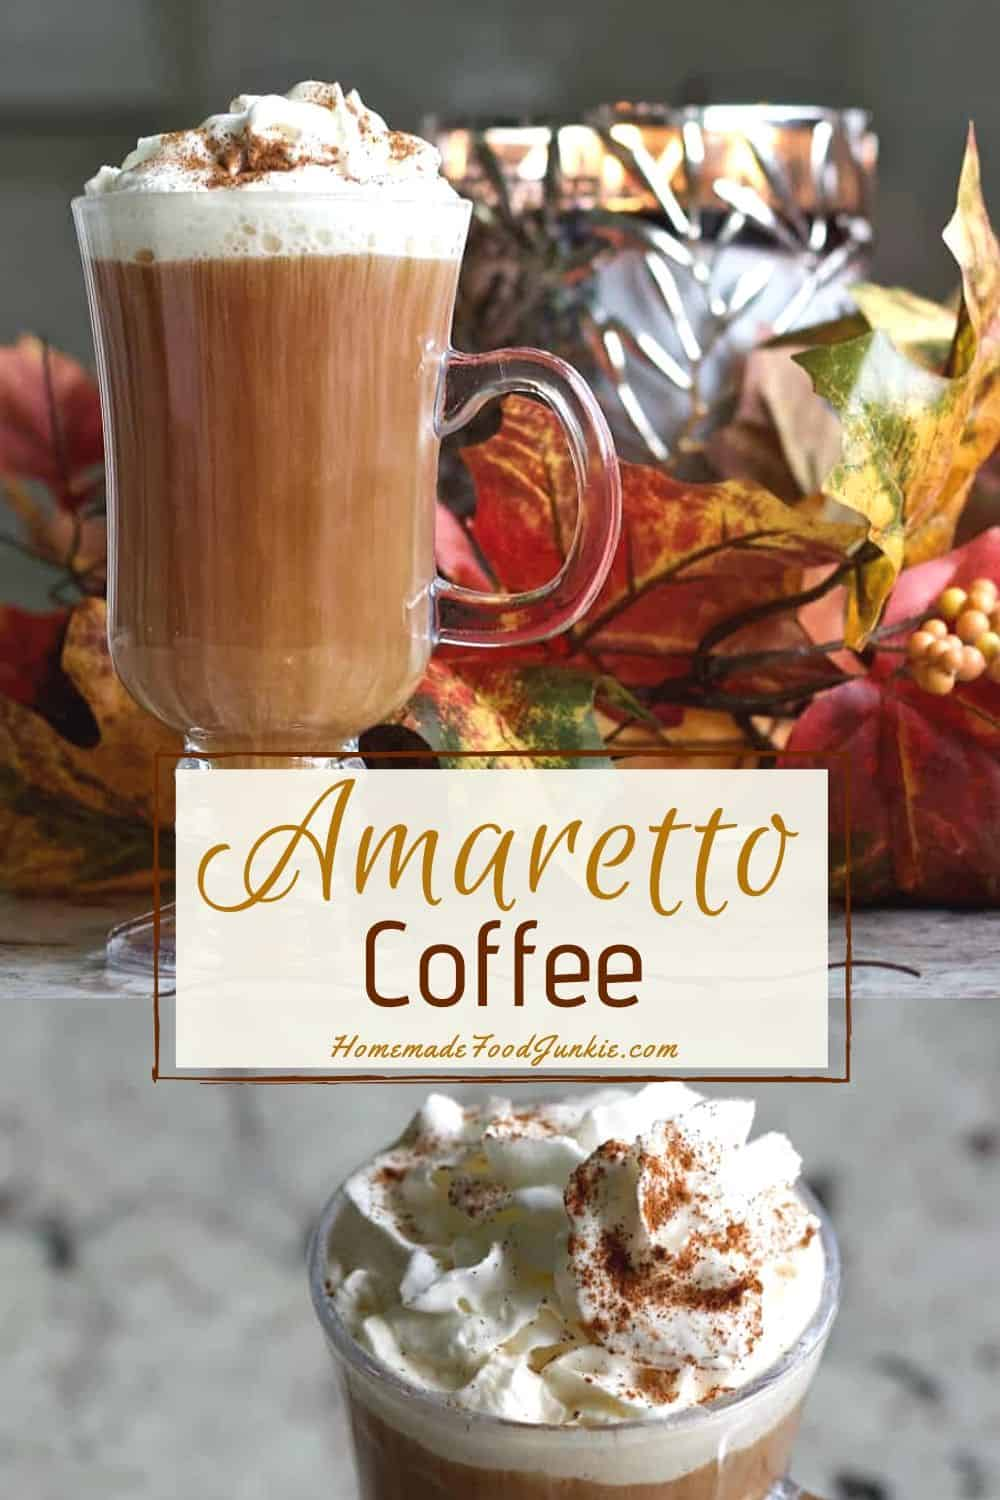 Amaretto brandy is truly coffees best friend. Rich and